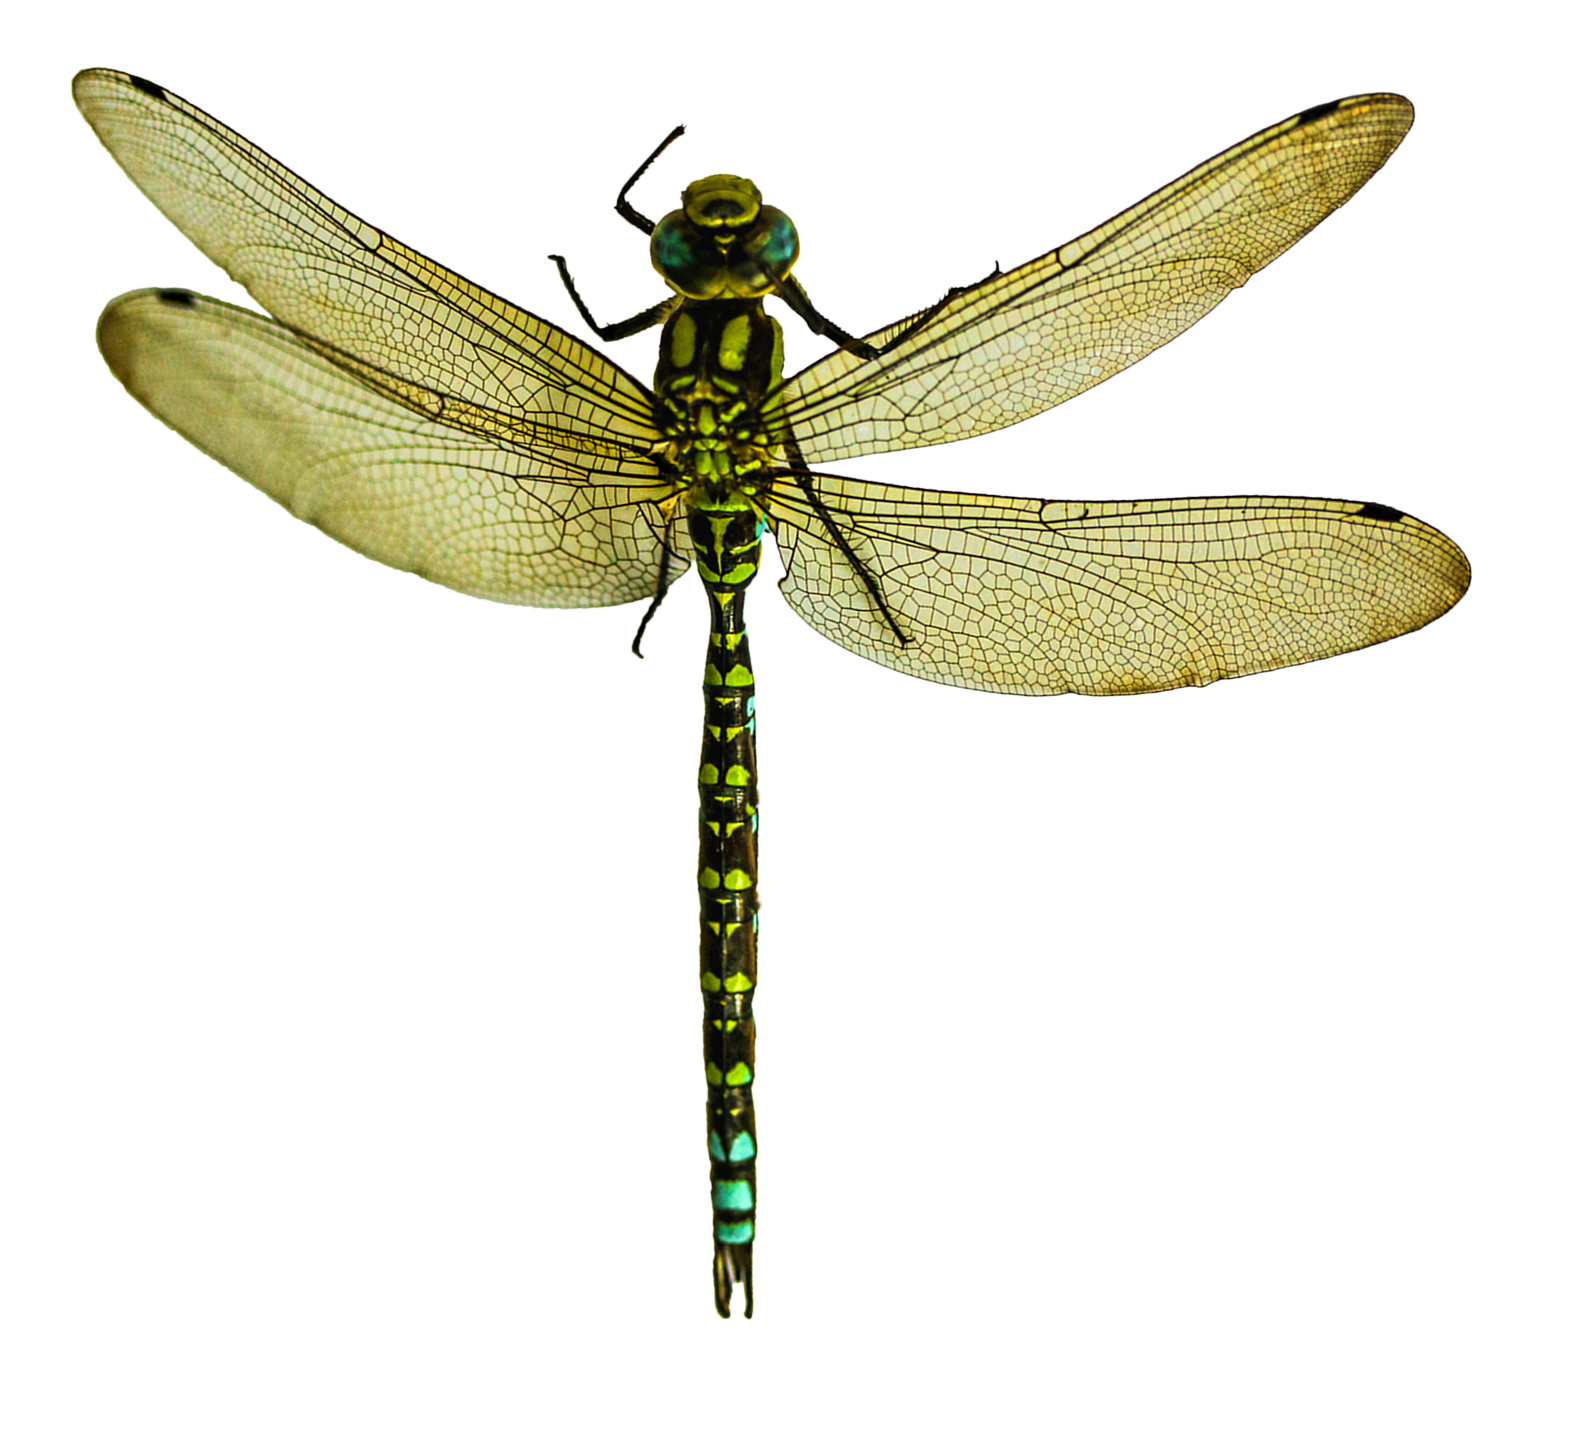 Dragonfly Png Image Dragonfly Insects Tan Combat Boots